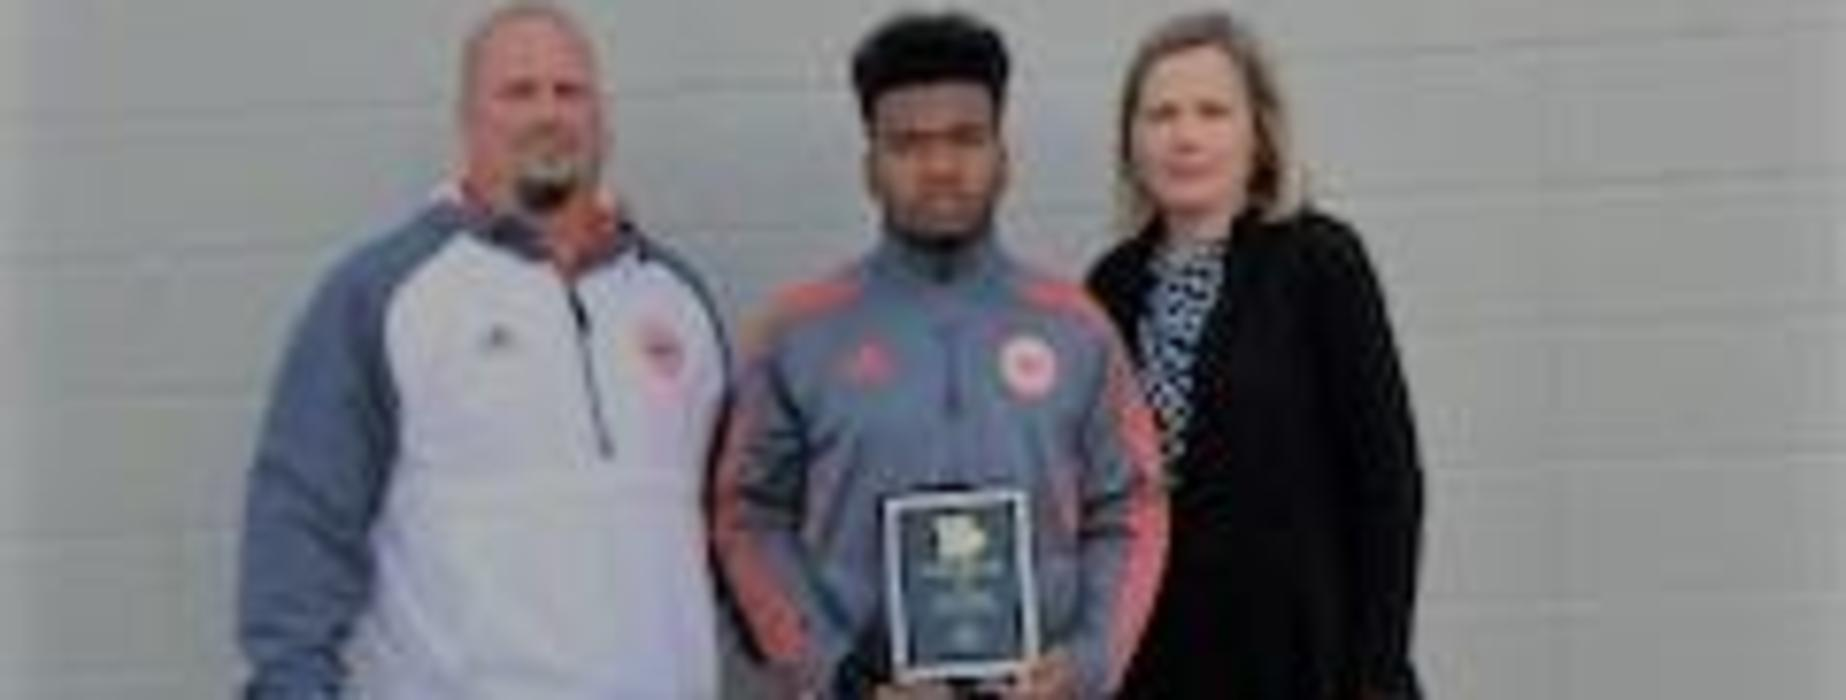 Congratulations to Adrian E. - KLFY Athlete of the Week